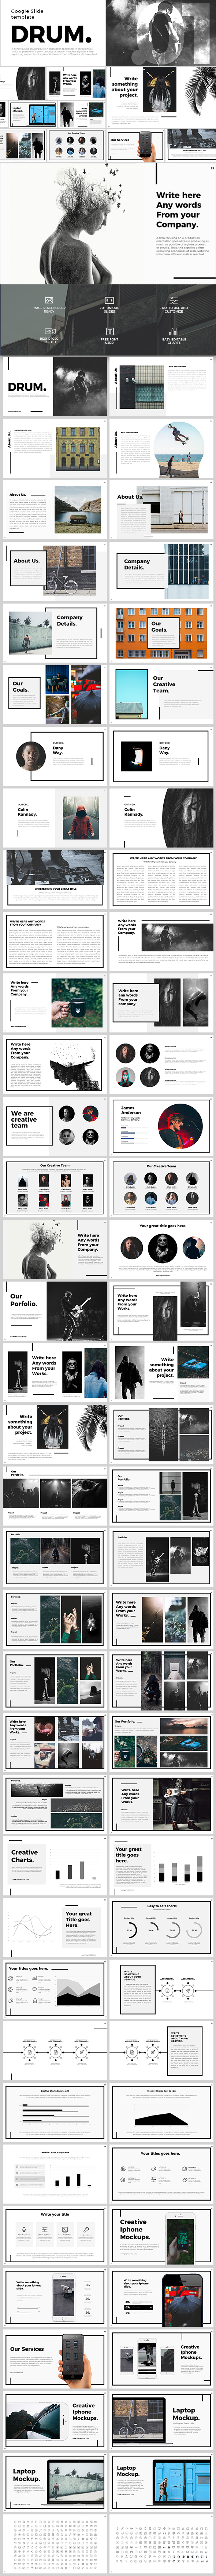 Drum Google Slides - Google Slides Presentation Templates